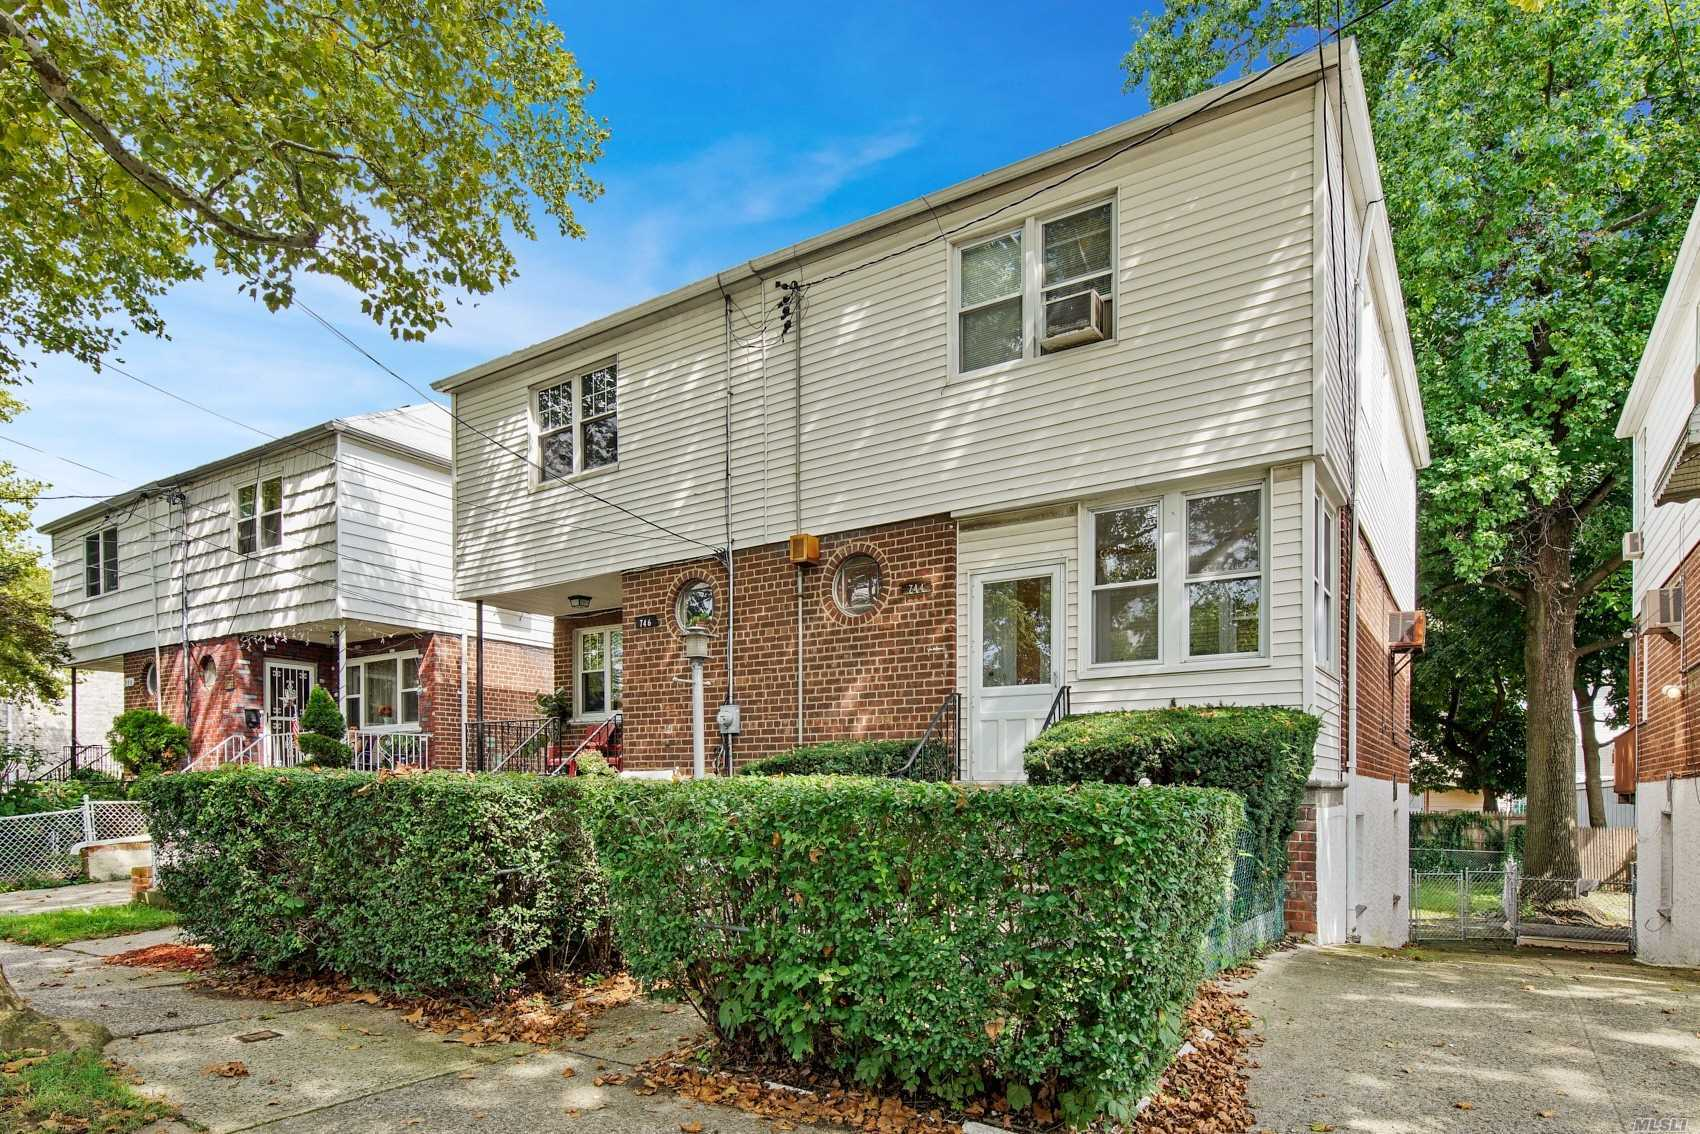 744 Throggs Neck Exp 10465 - One of Bronx Homes for Sale